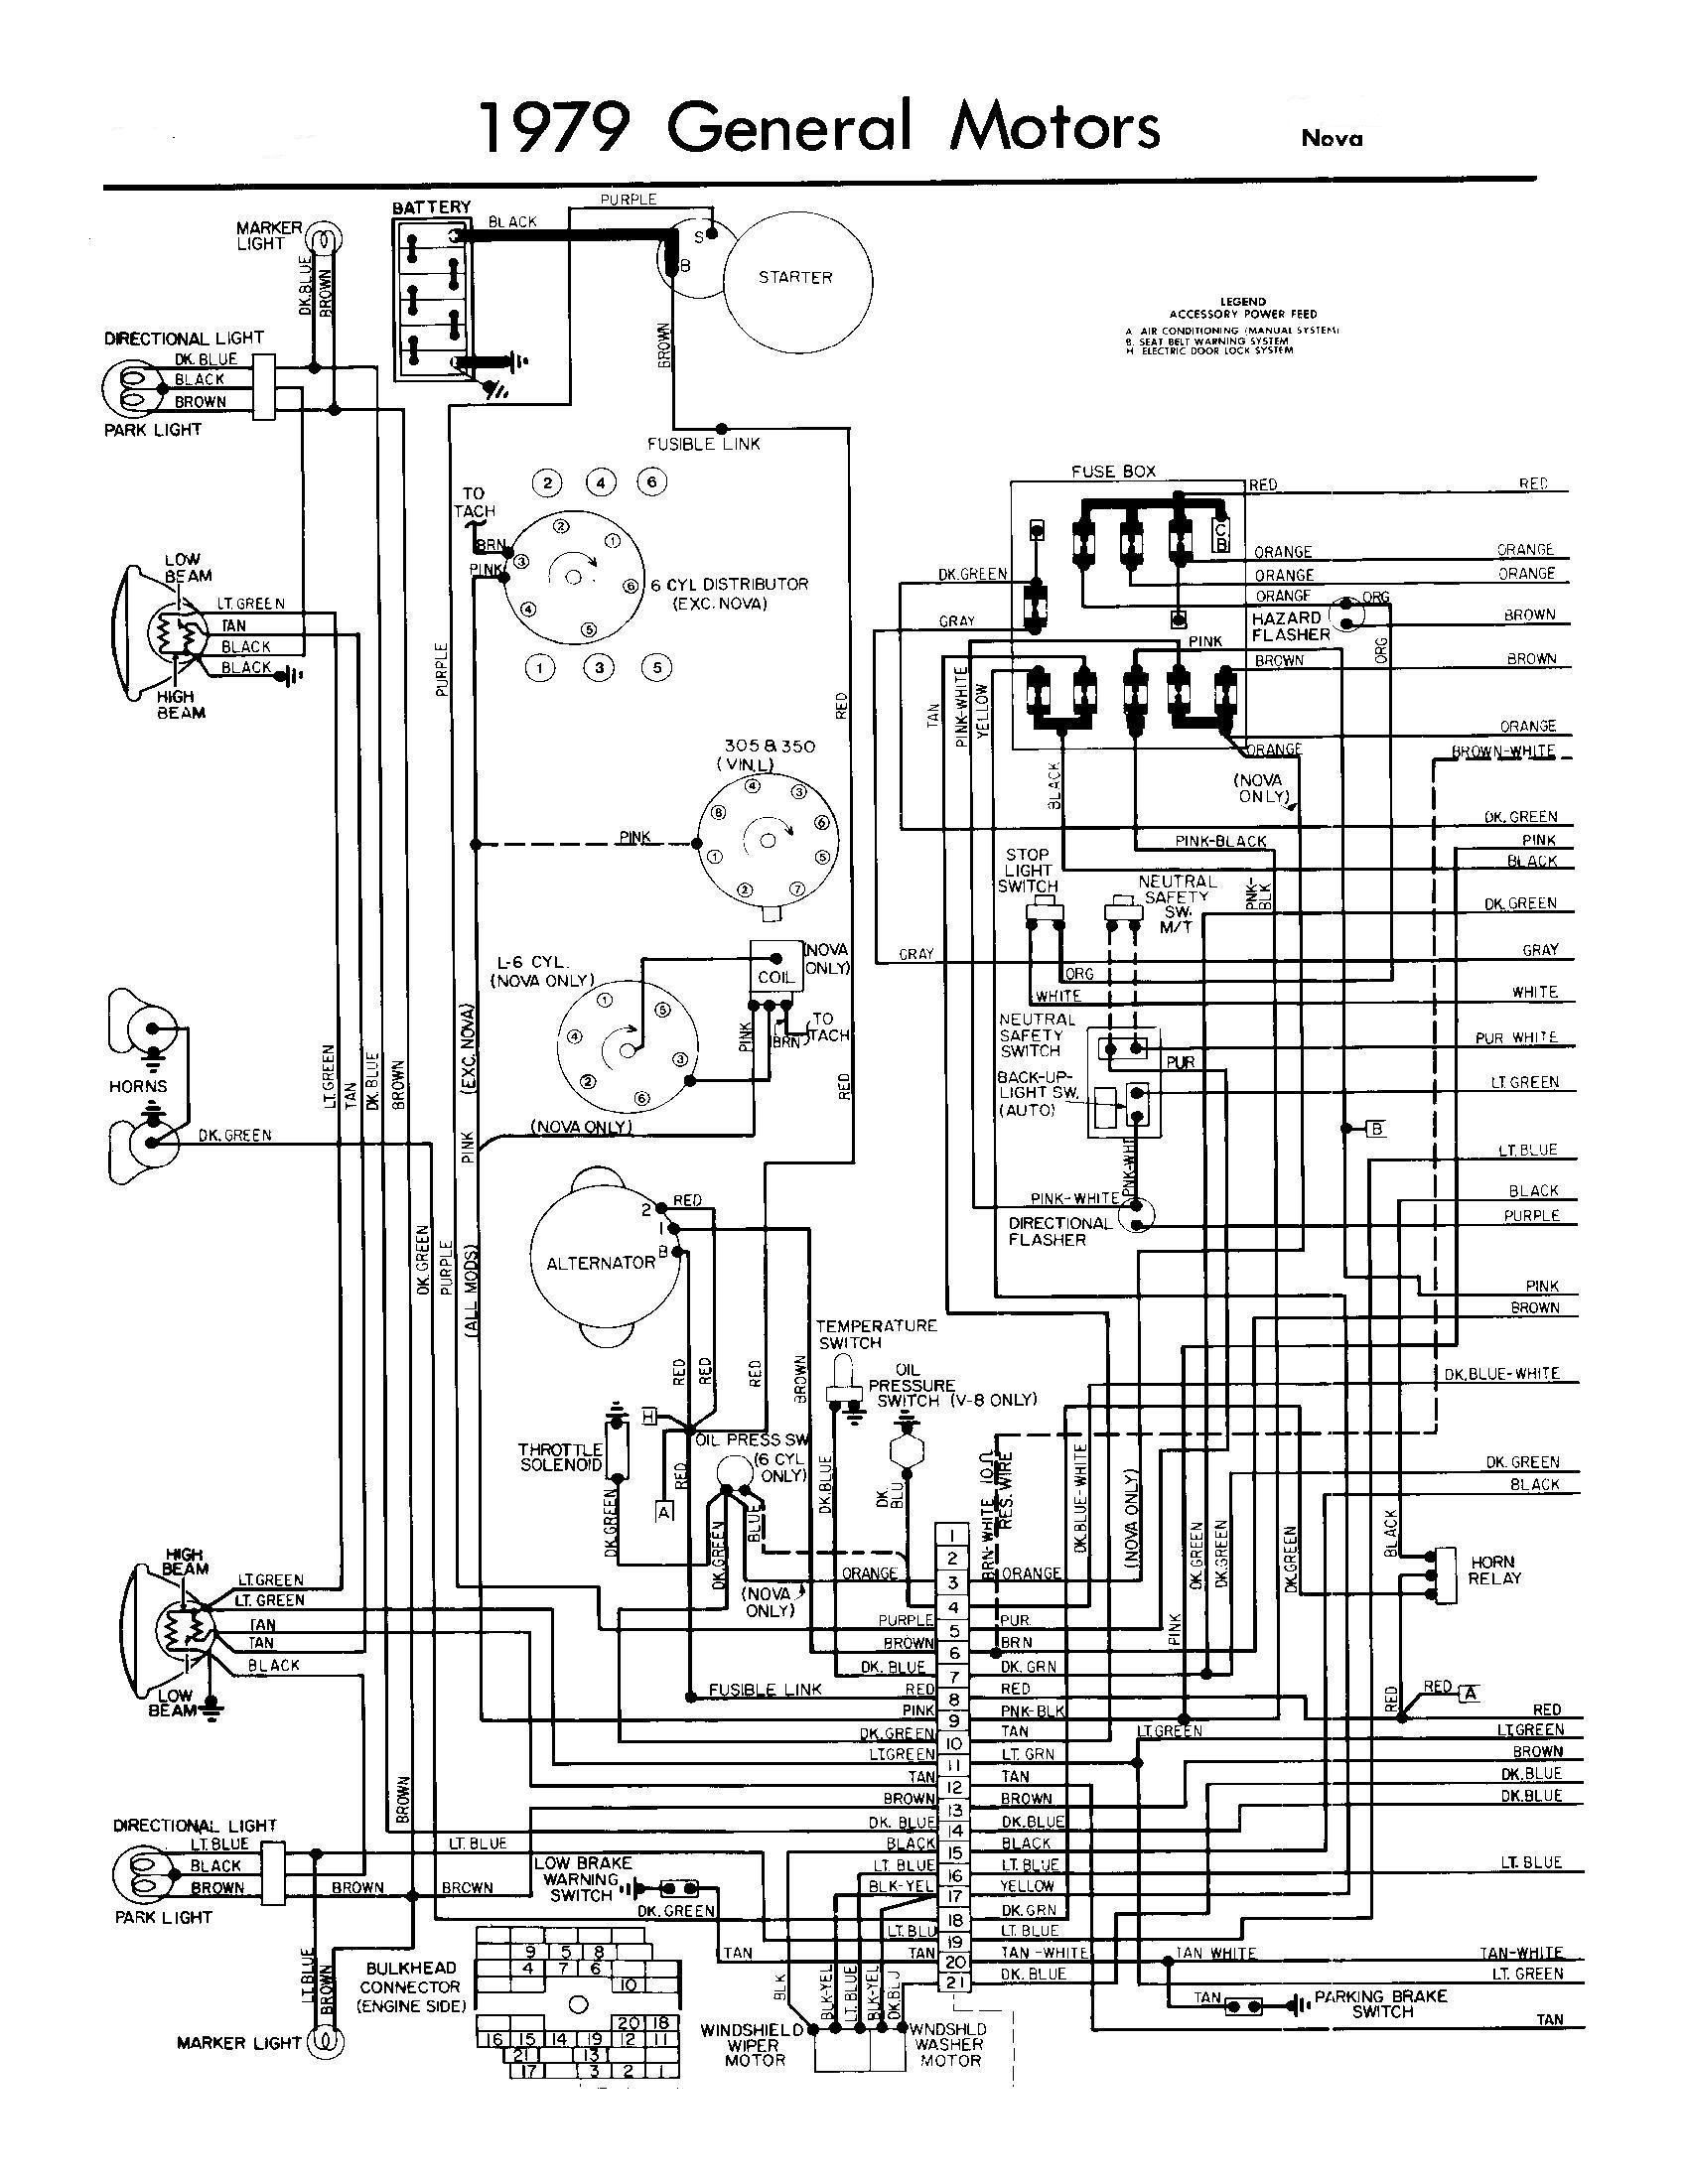 af30d80785d45bfeba8f1db47439920a all generation wiring schematics chevy nova forum custom 79' gmc 2008 Chevy Silverado Wiring Diagram at panicattacktreatment.co